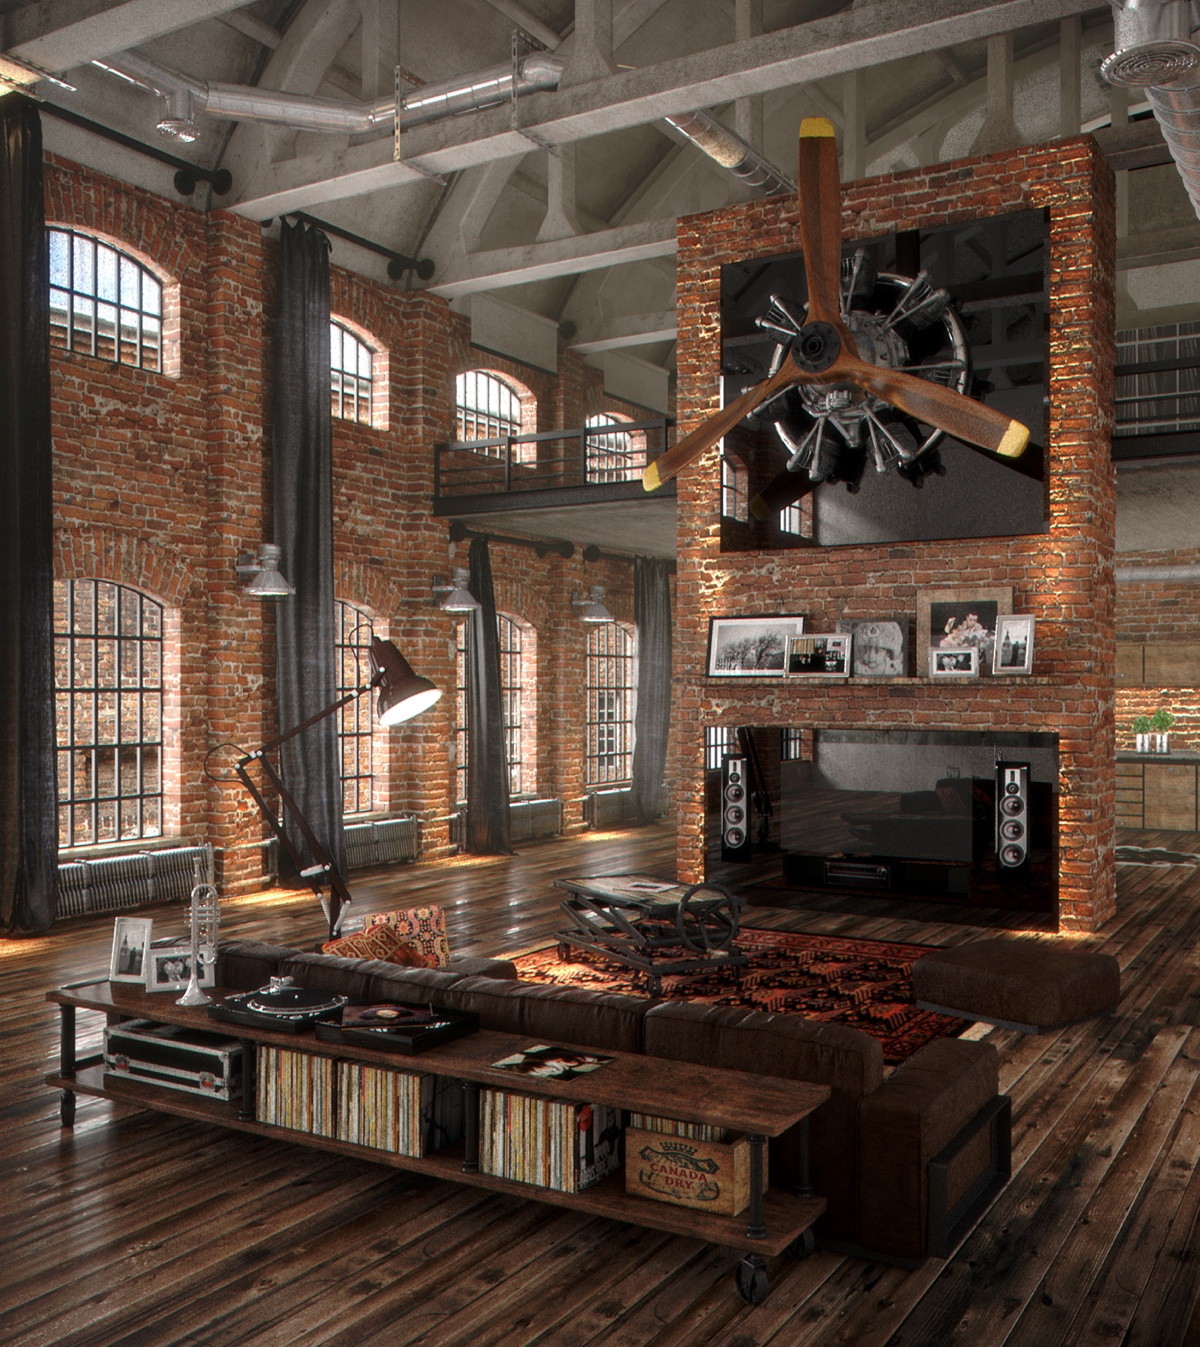 40 incredible lofts that push boundaries - Vintage industrial interior design ...